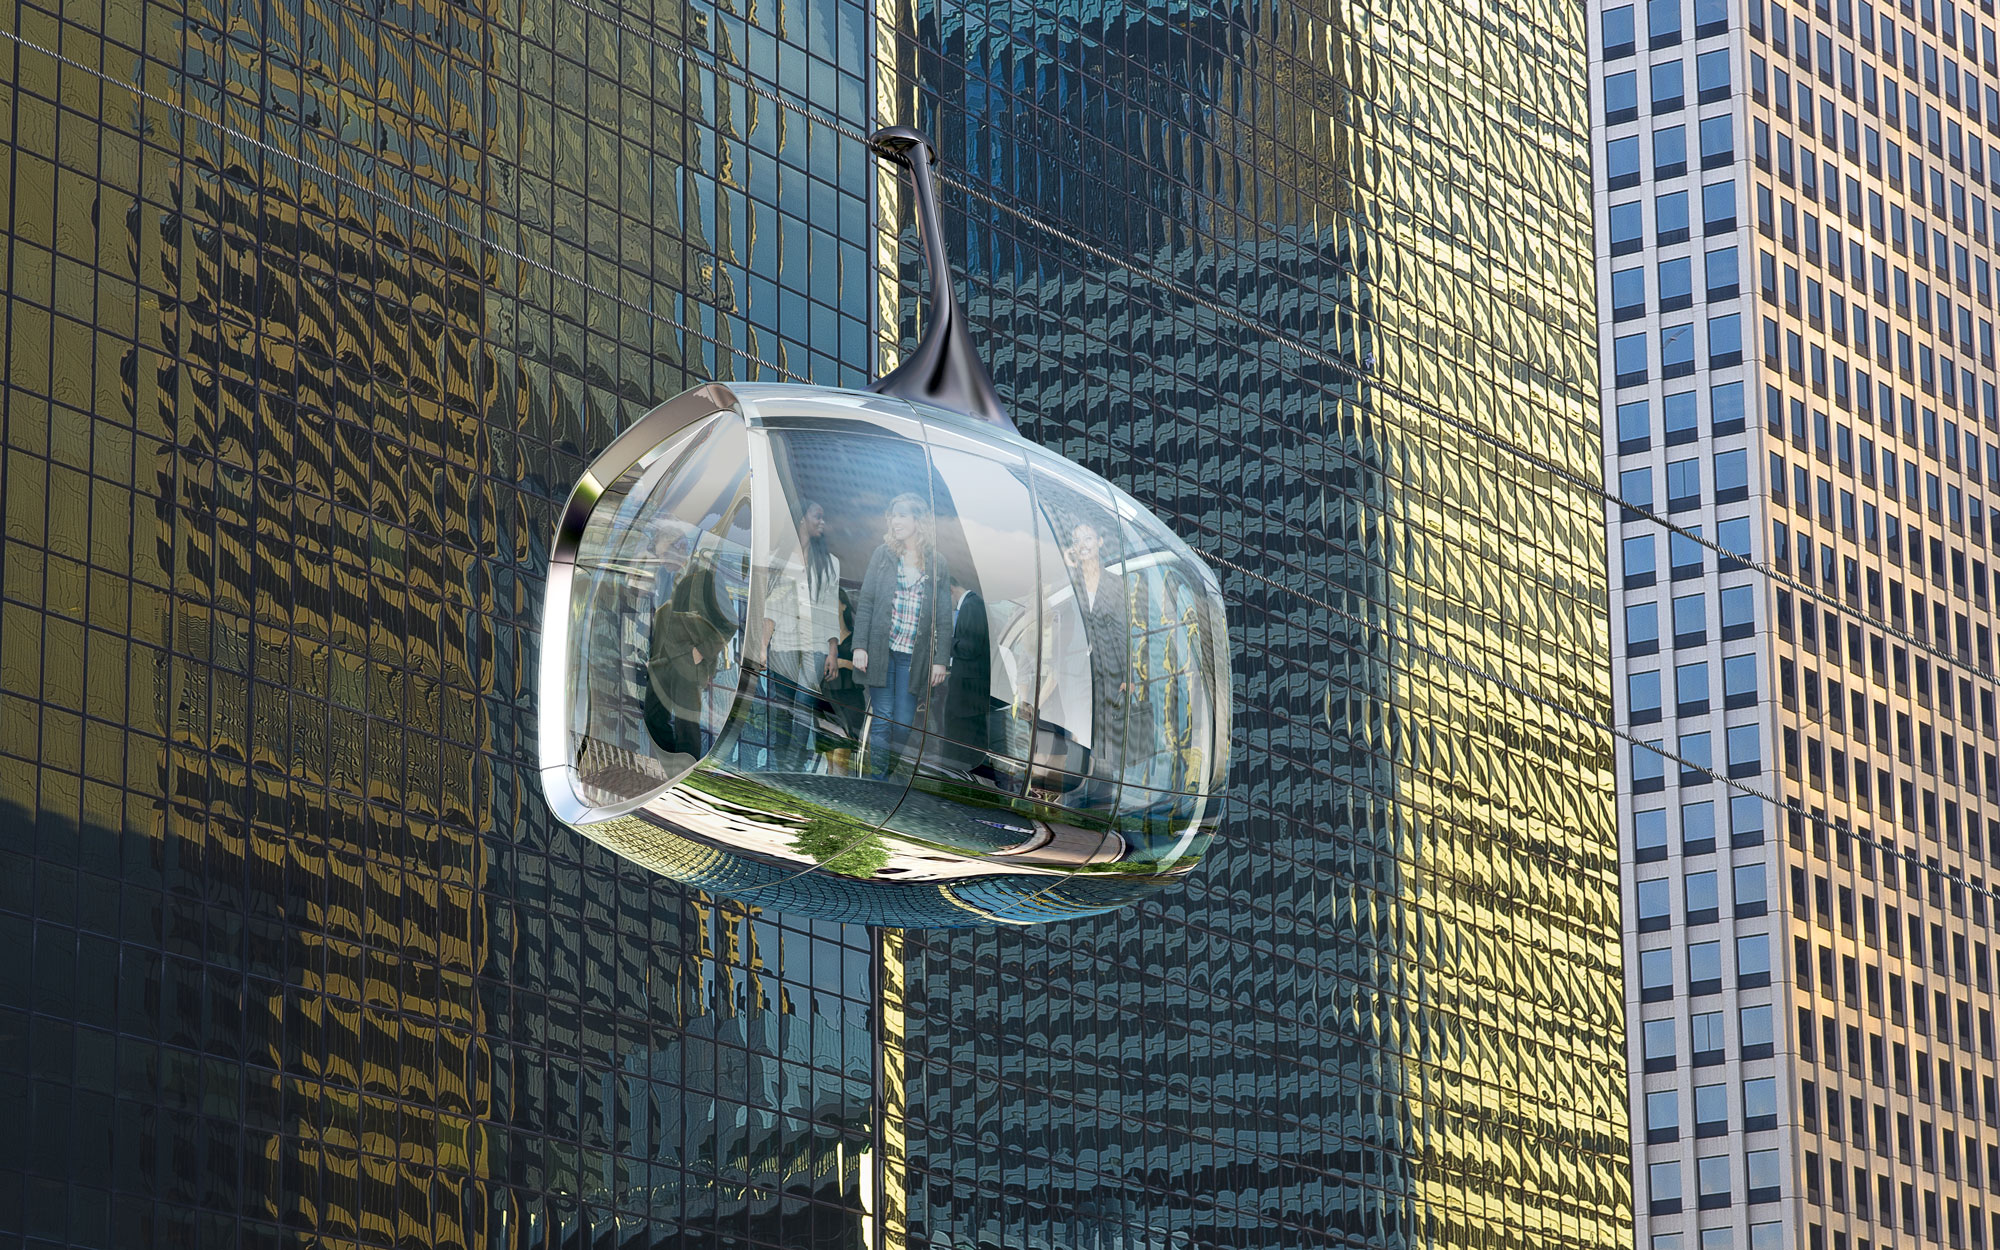 A Glass Cable Car Attraction Proposed for Chicago